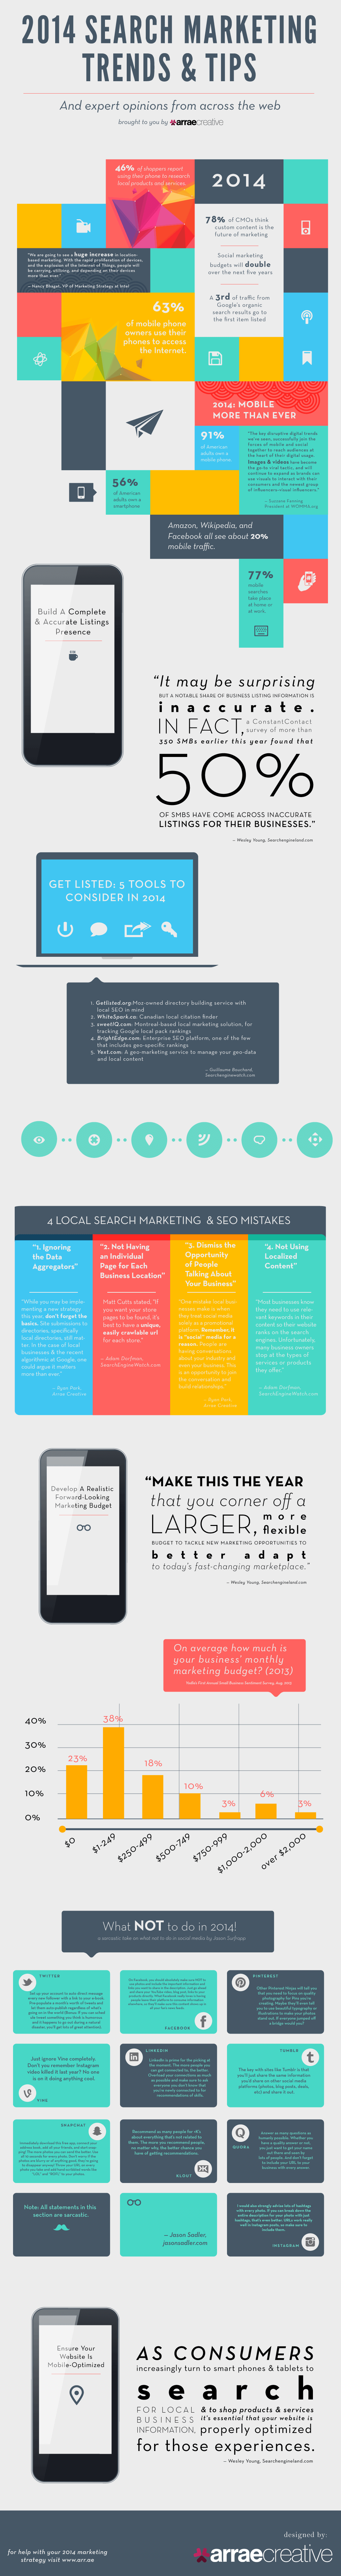 Infographic | Online marketing trends en tips 2014